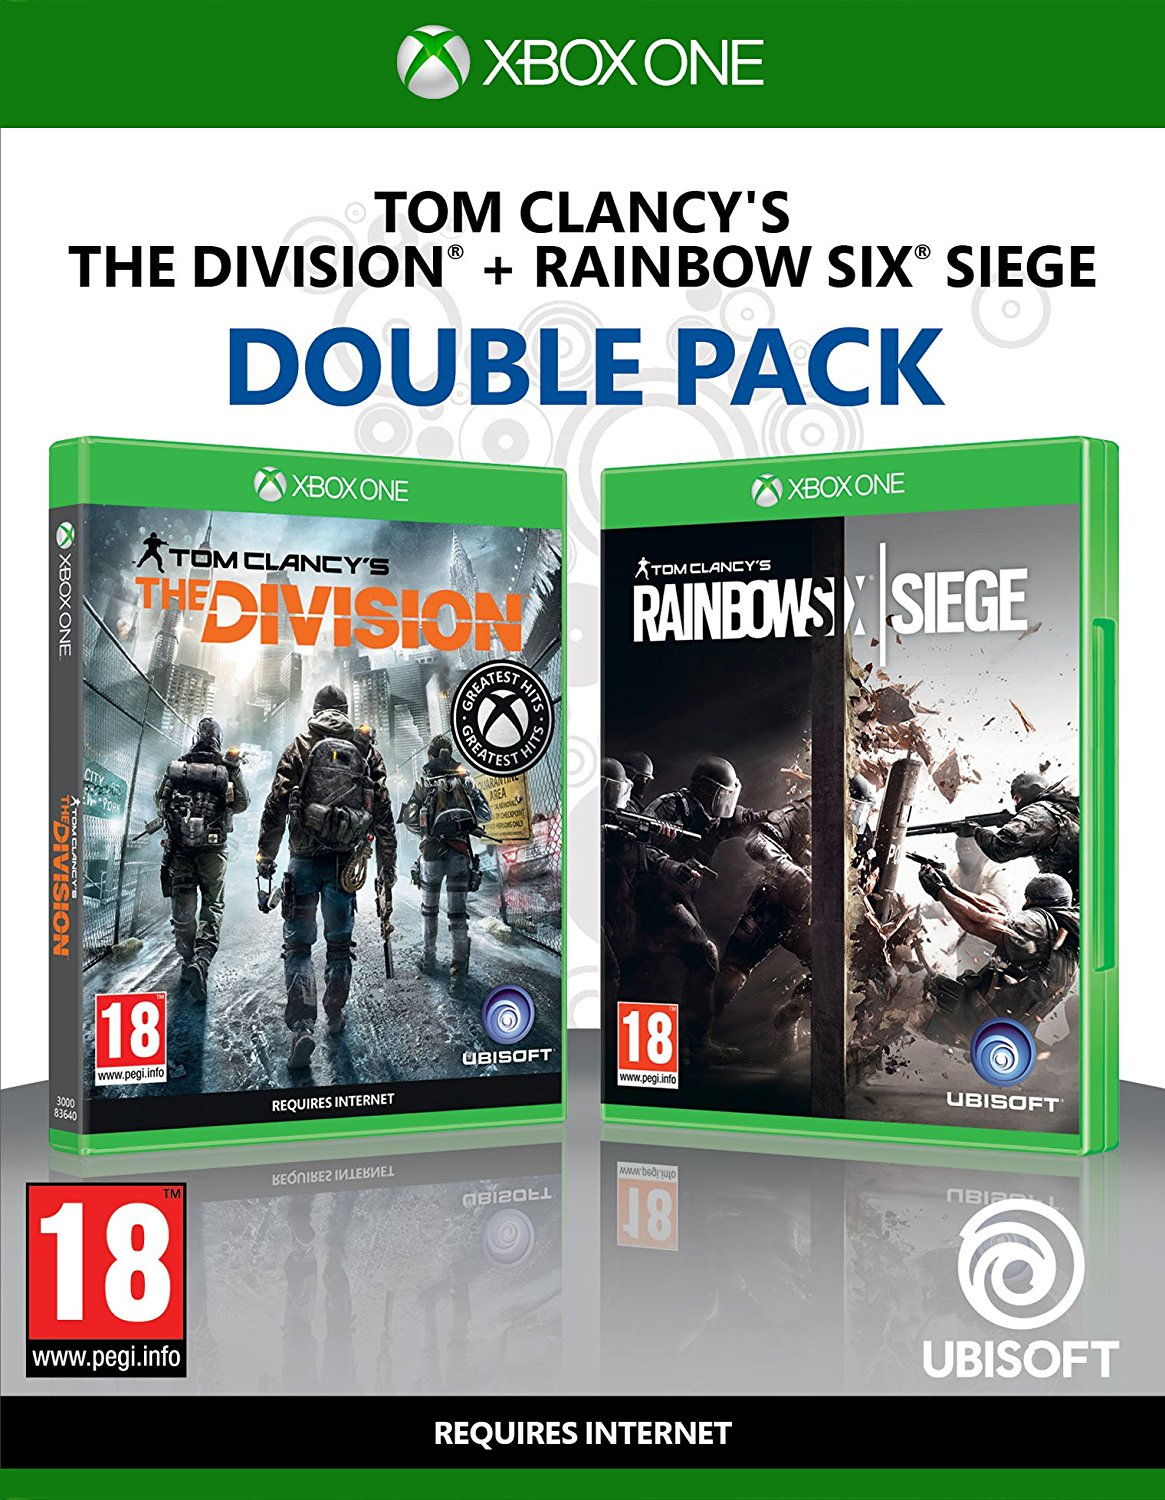 Rainbow Six Siege + The Division - Xbox One